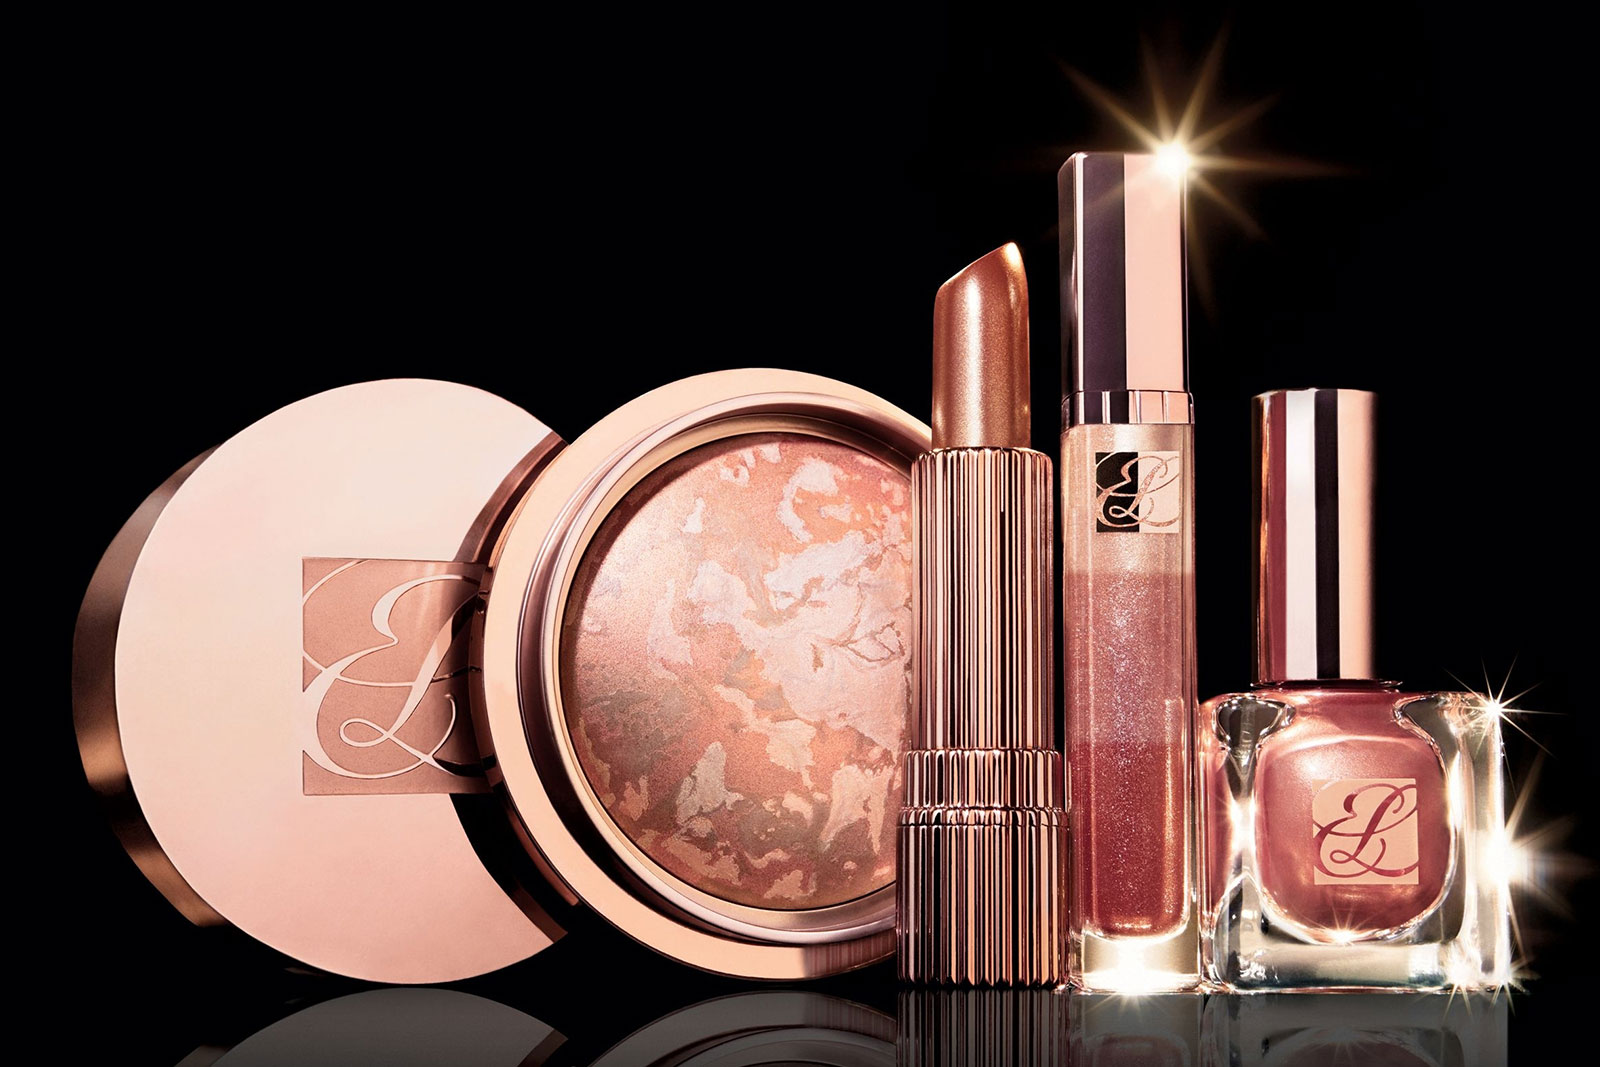 Christian Wallpaper Fall What To Expect When Estee Lauder El Reports Q4 Results